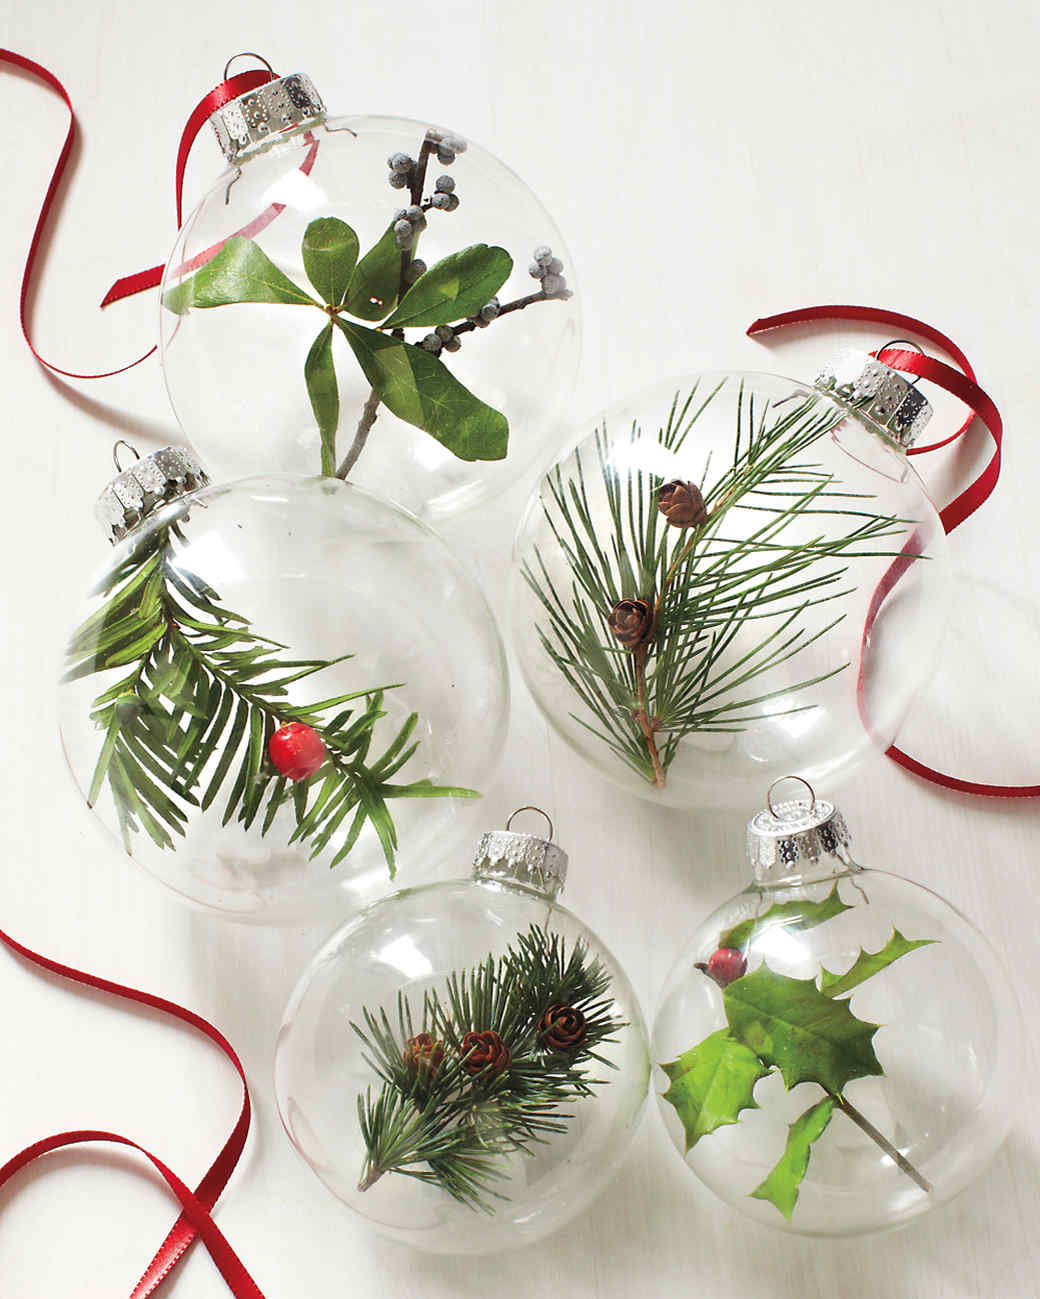 Holly christmas ornaments - Nature Ornaments